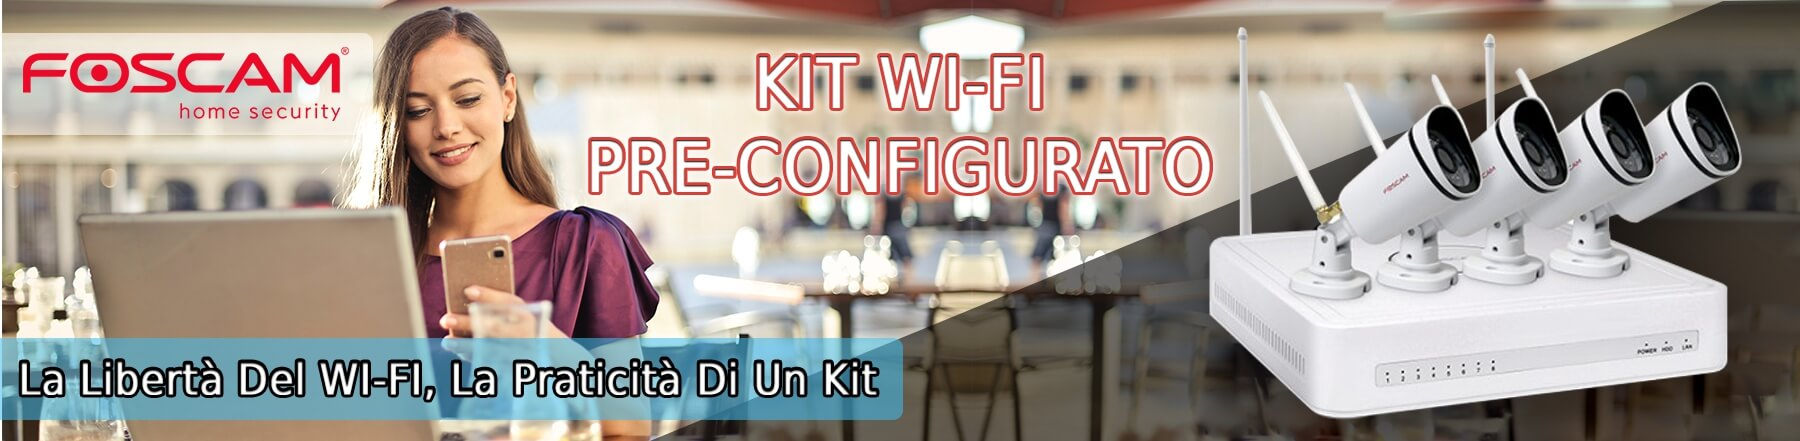 Kit Foscam WiFi